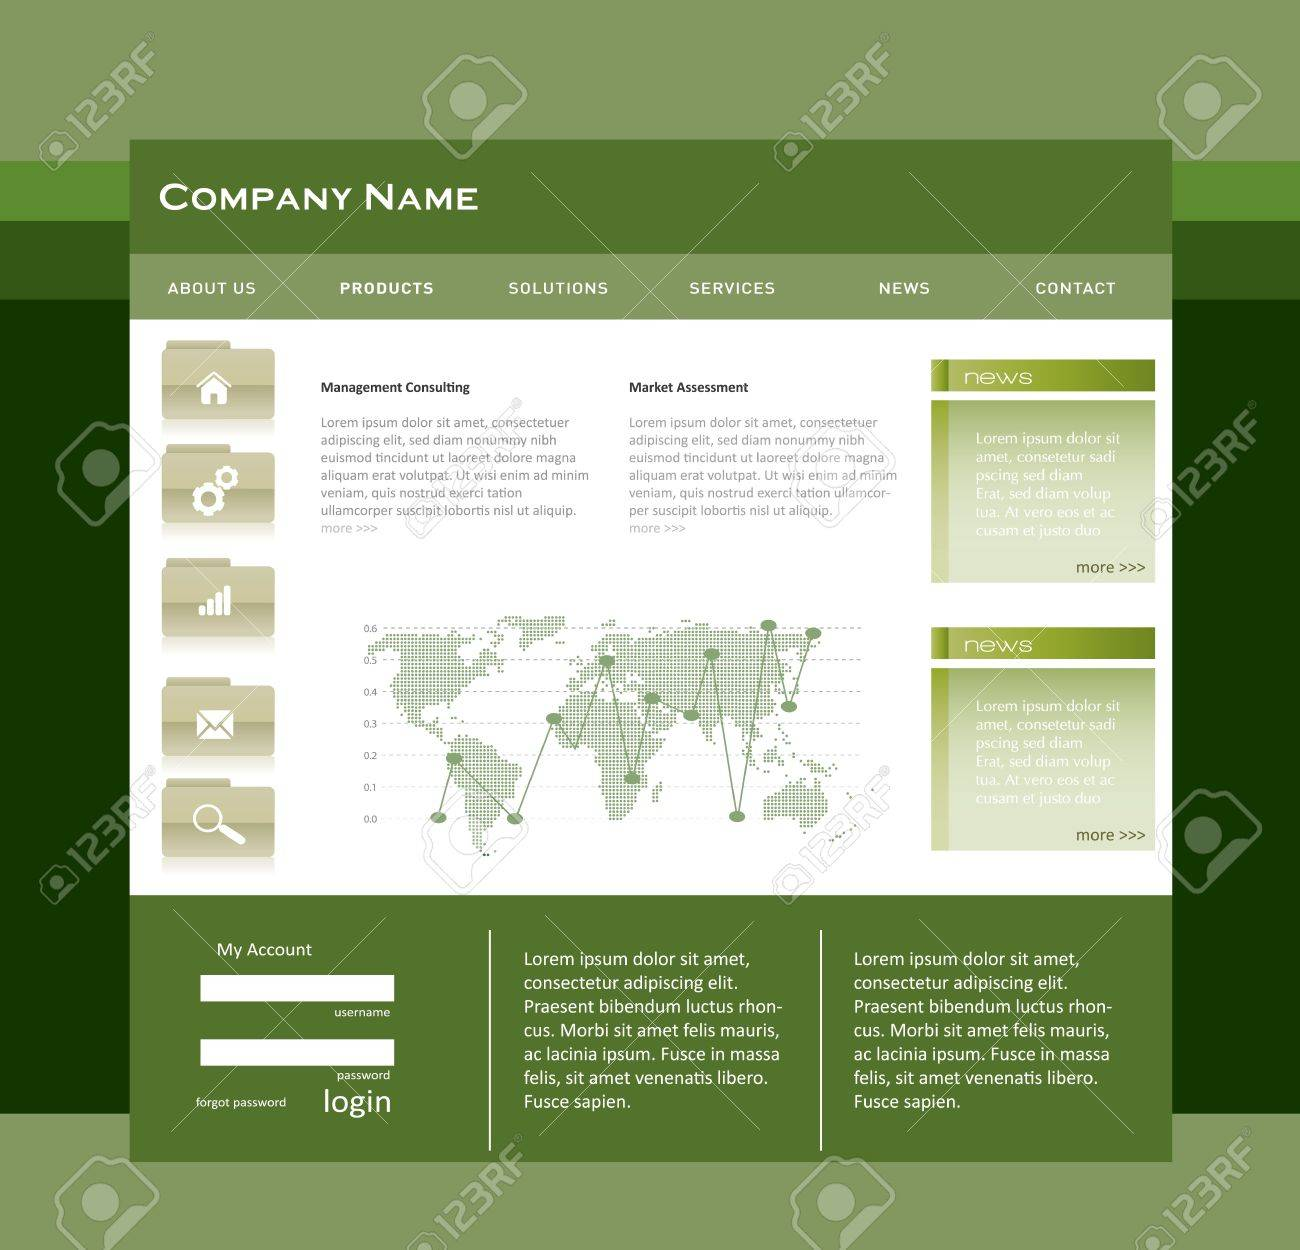 Simple Website Template In Editable Vector Format Royalty Free ...